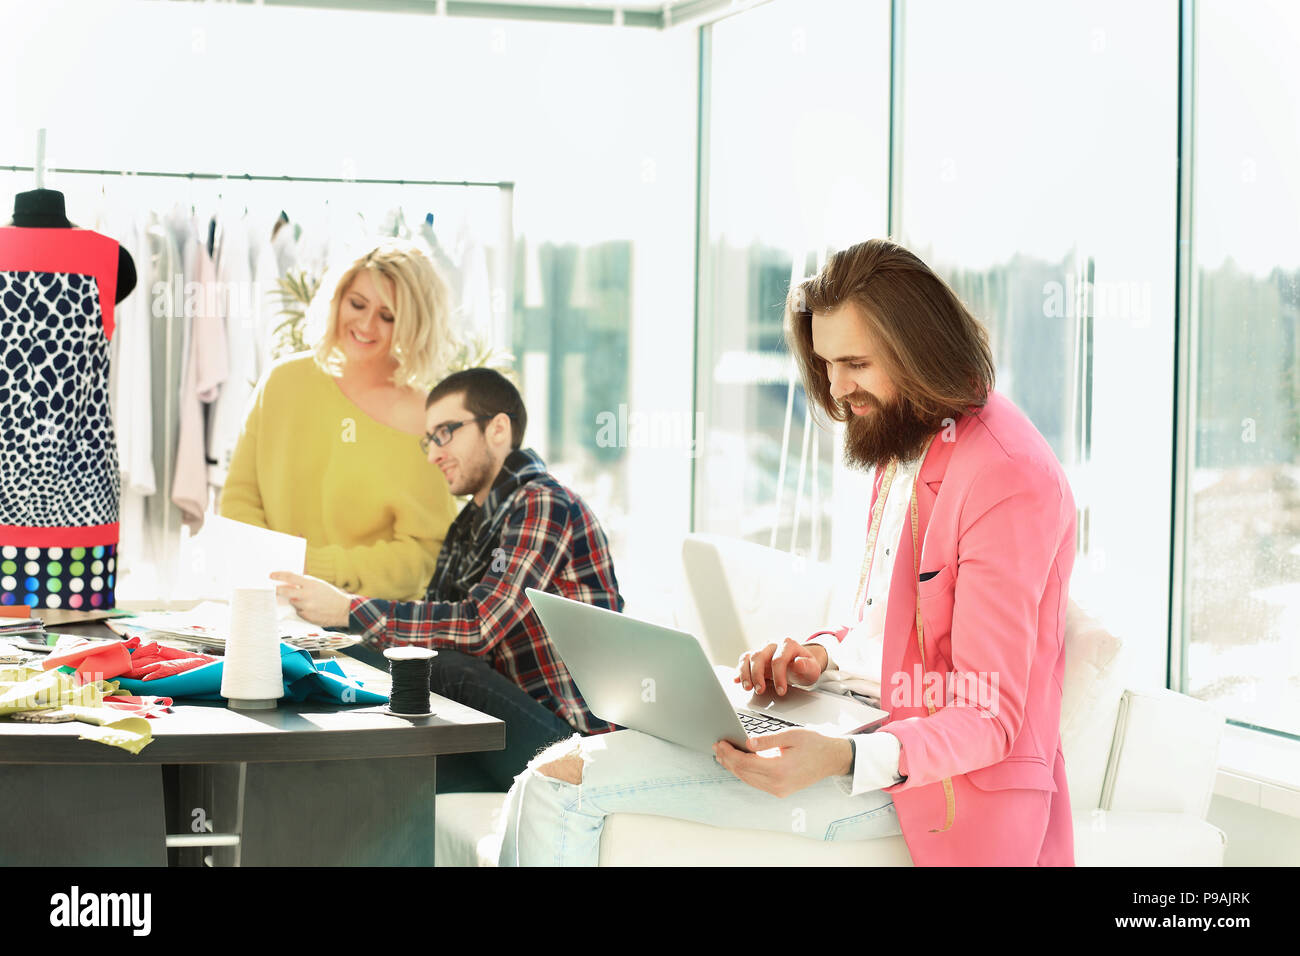 fashion designer working on a laptop in a creative office - Stock Image